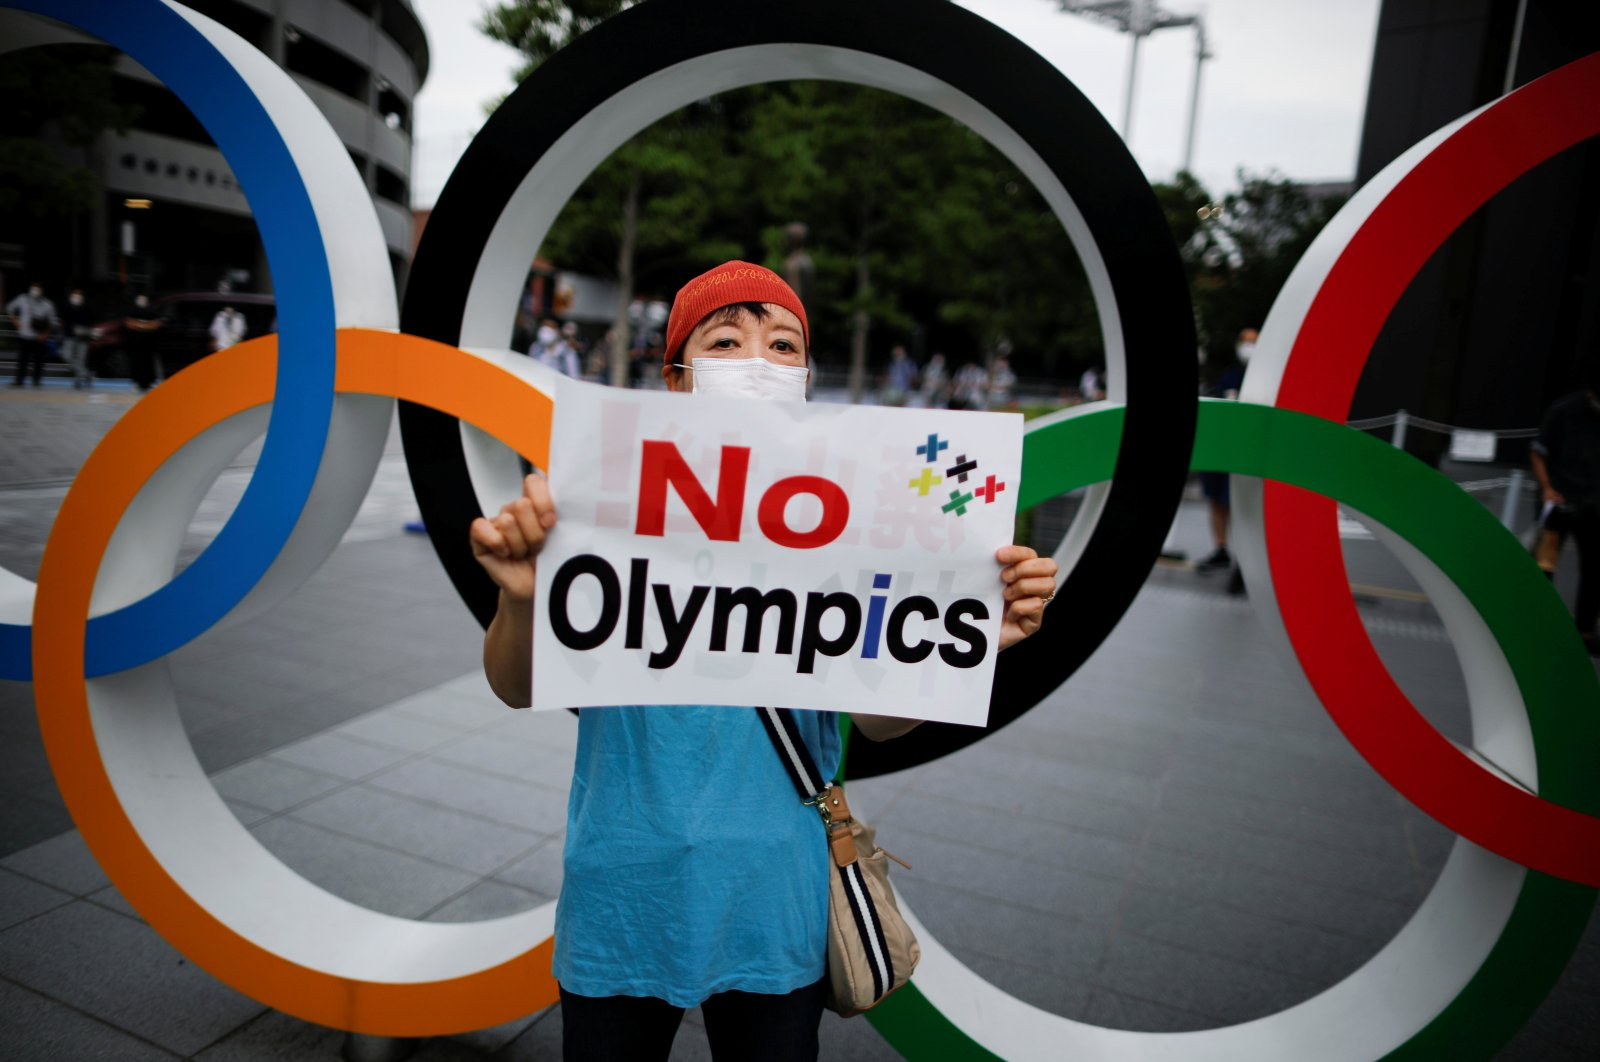 A demonstrator wearing a face mask holds a sign to protest against the Tokyo 2020 Olympic Games, in Tokyo, Japan on July 24, 2020. (Reuters Photo)